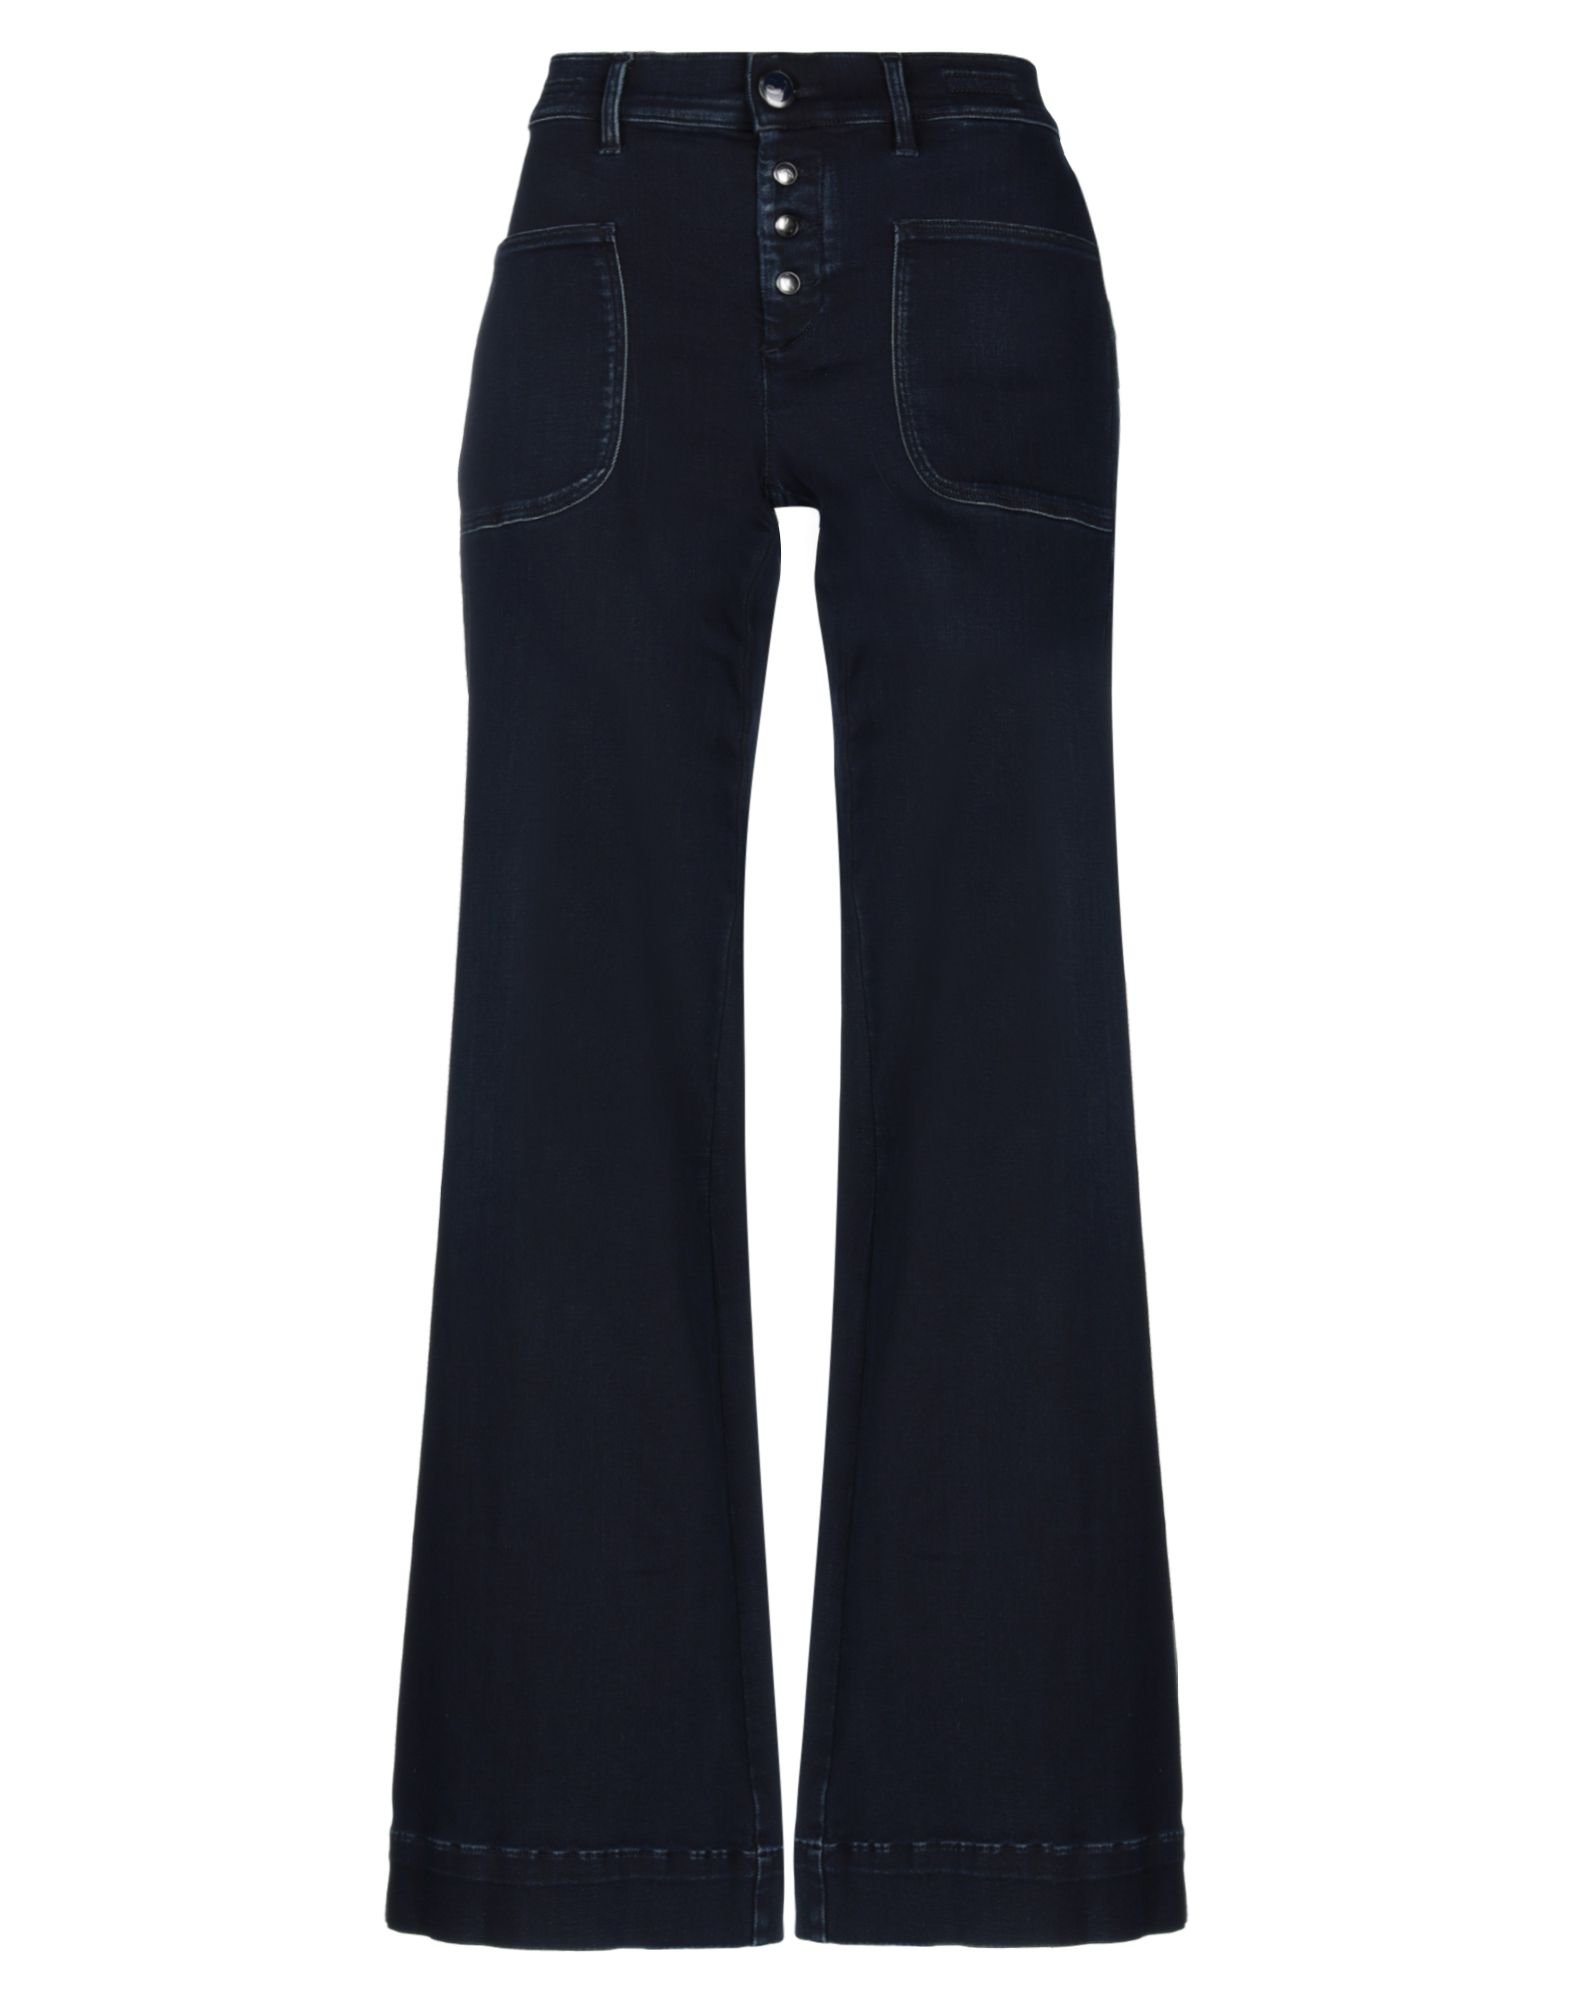 JACOB COHЁN Denim pants - Item 42813920